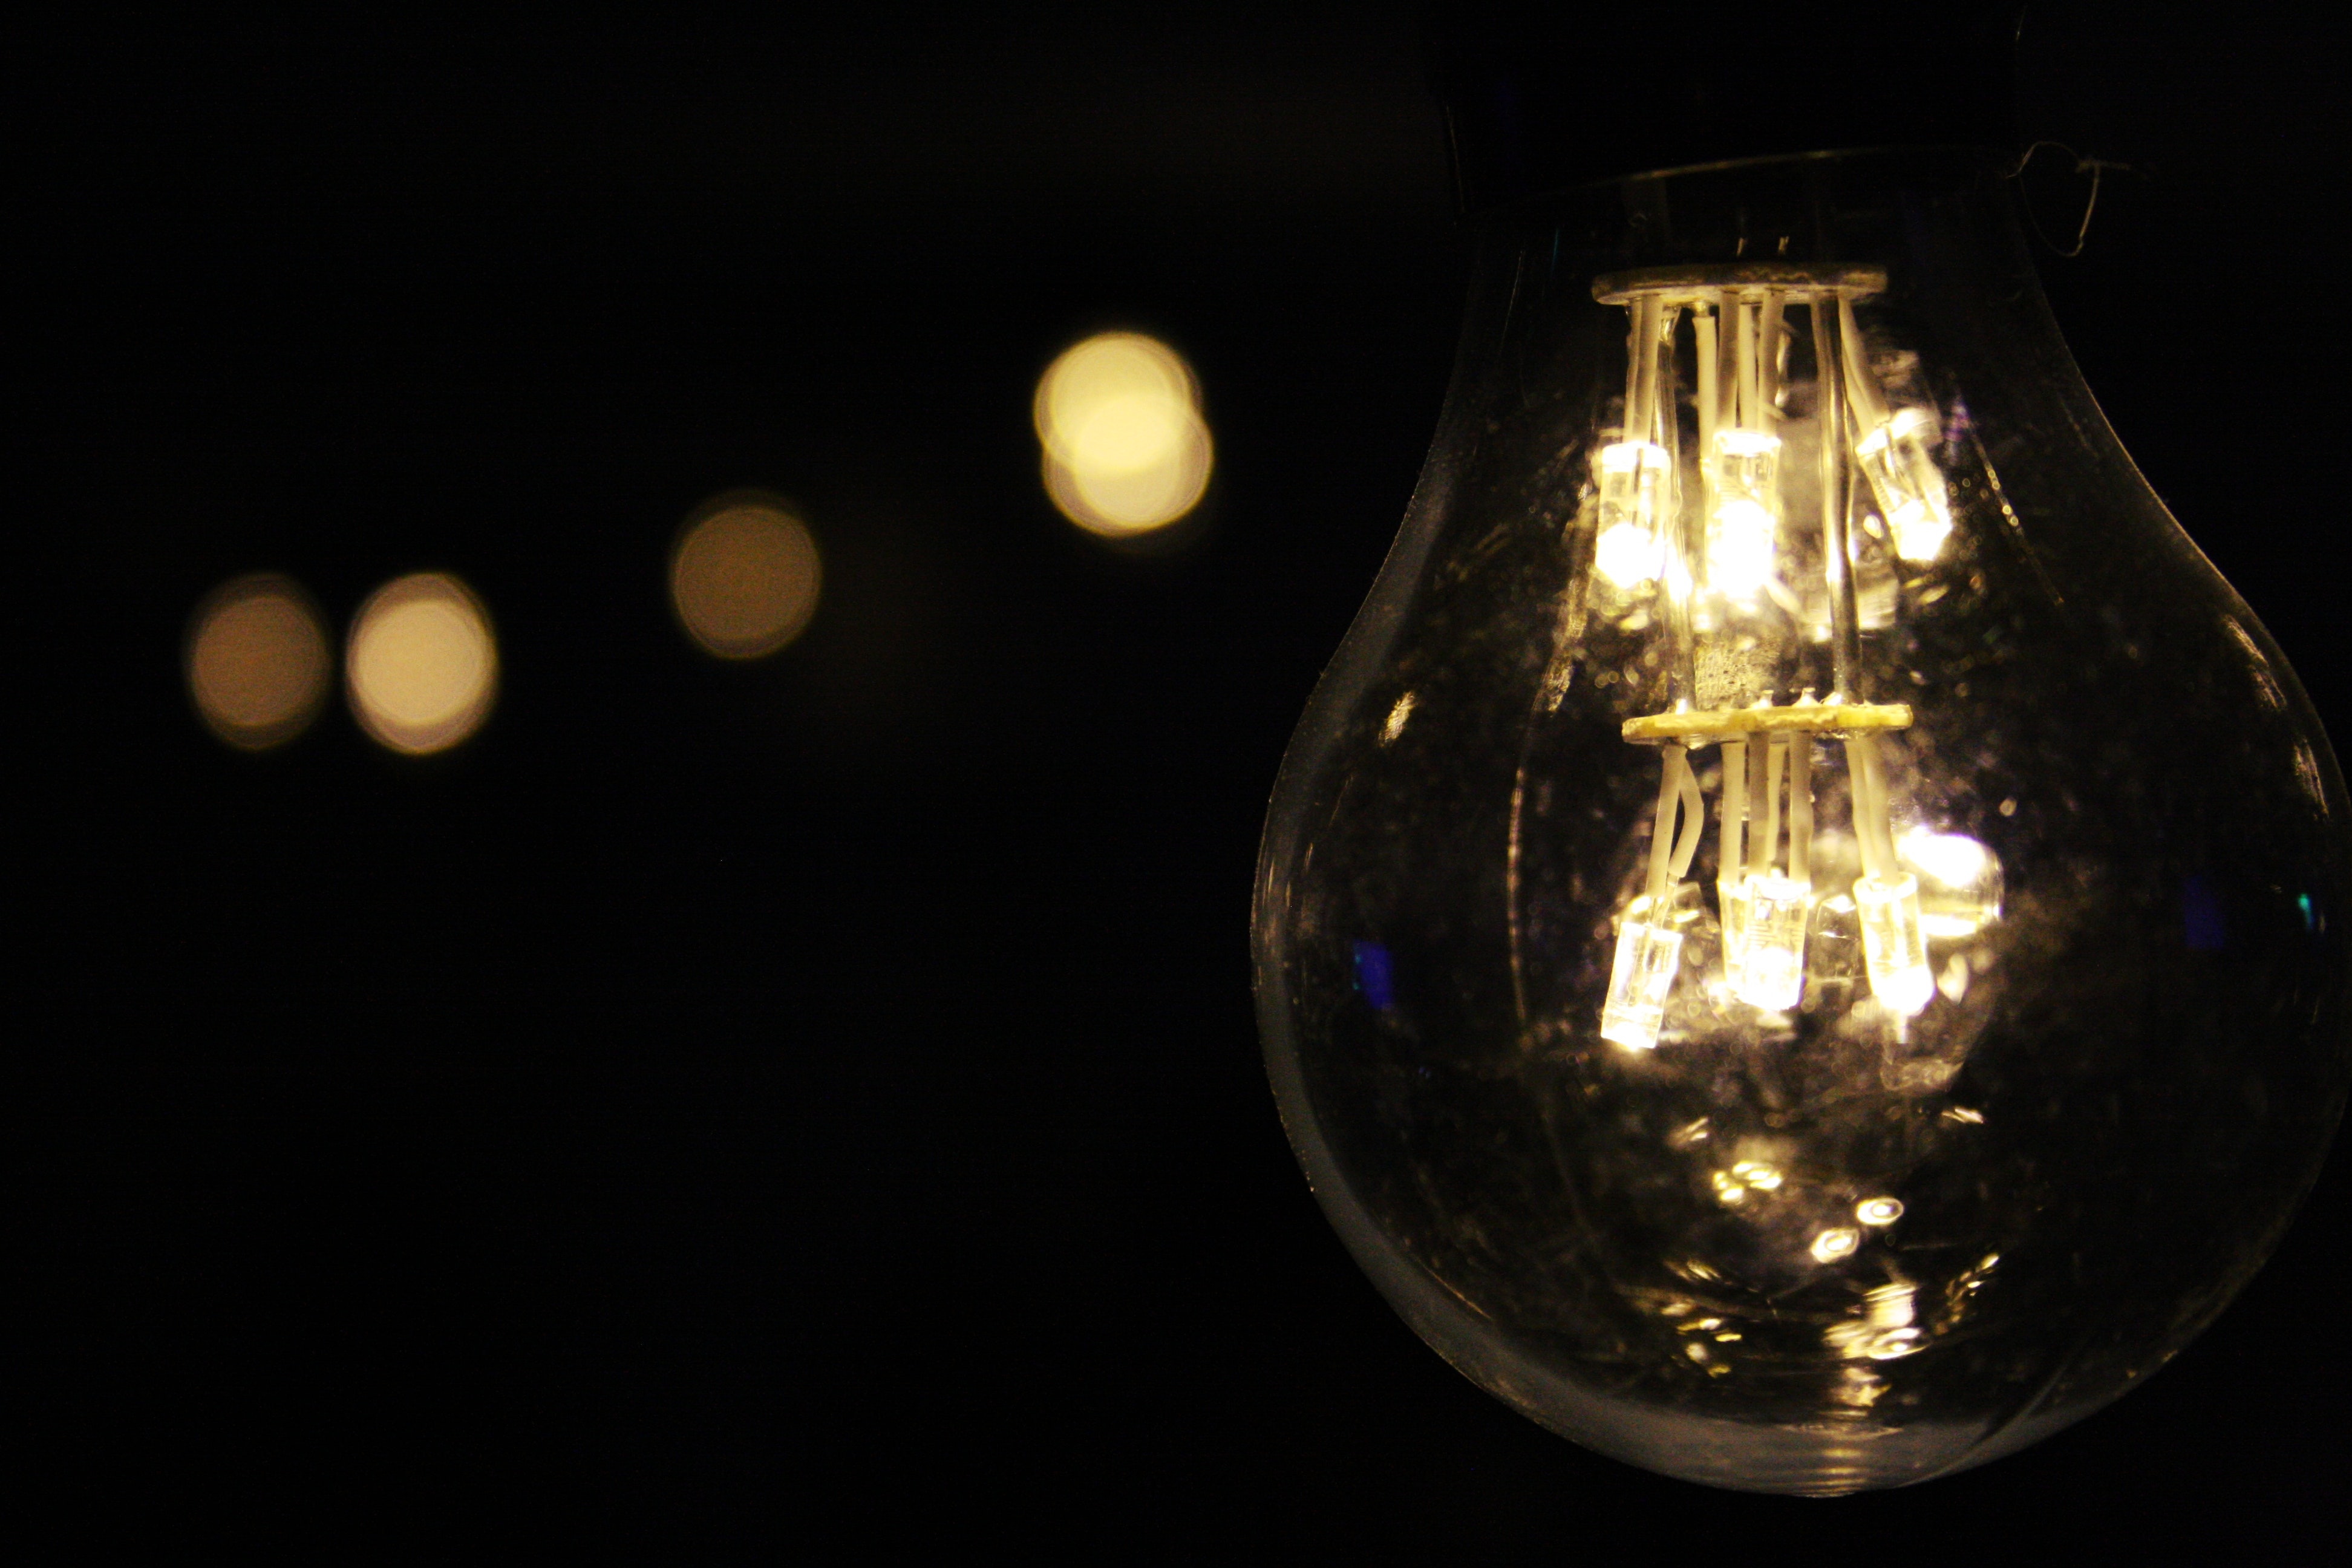 Lighted bulb during night time photo